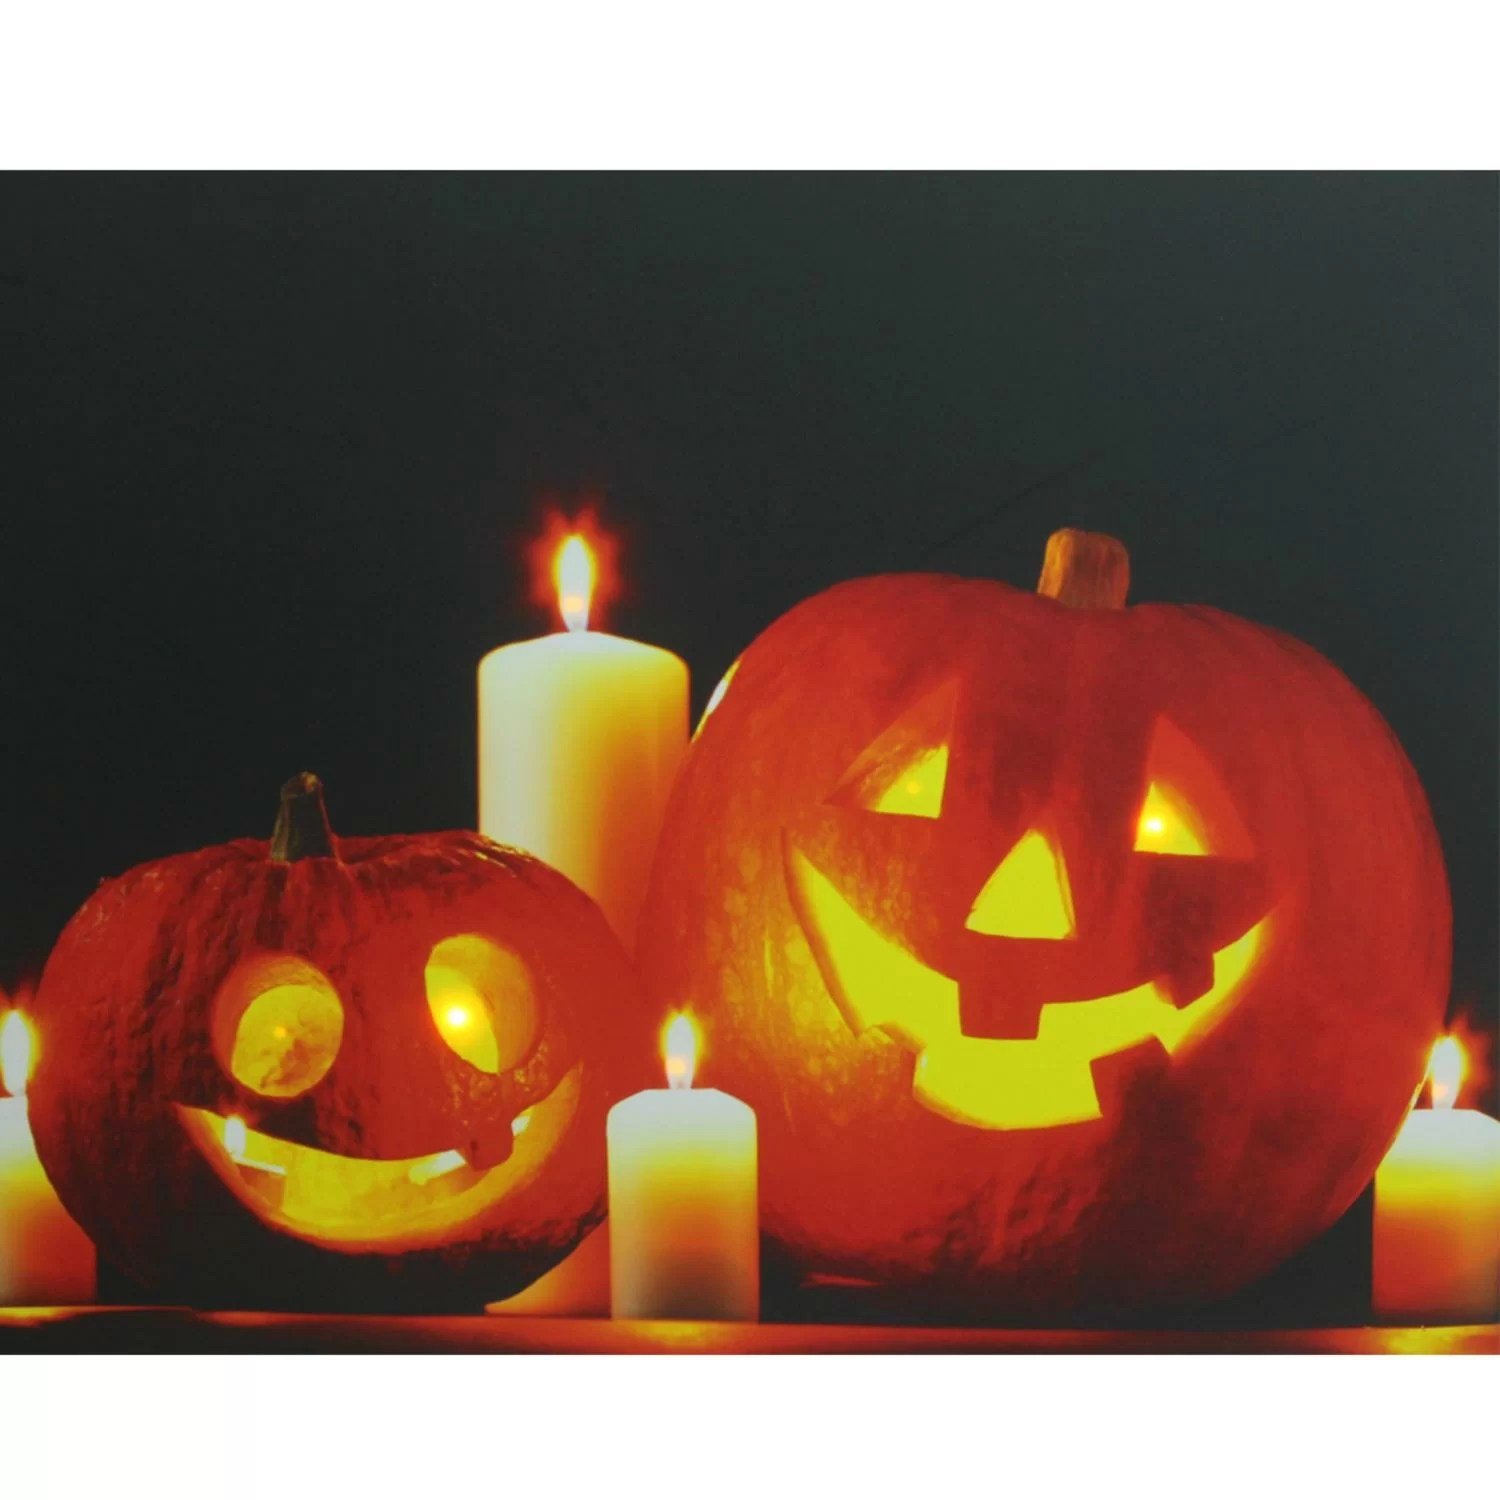 Led Halloween Lights Halloween Jack O Lanterns Battery Operated Led Graphic Art On Canvas